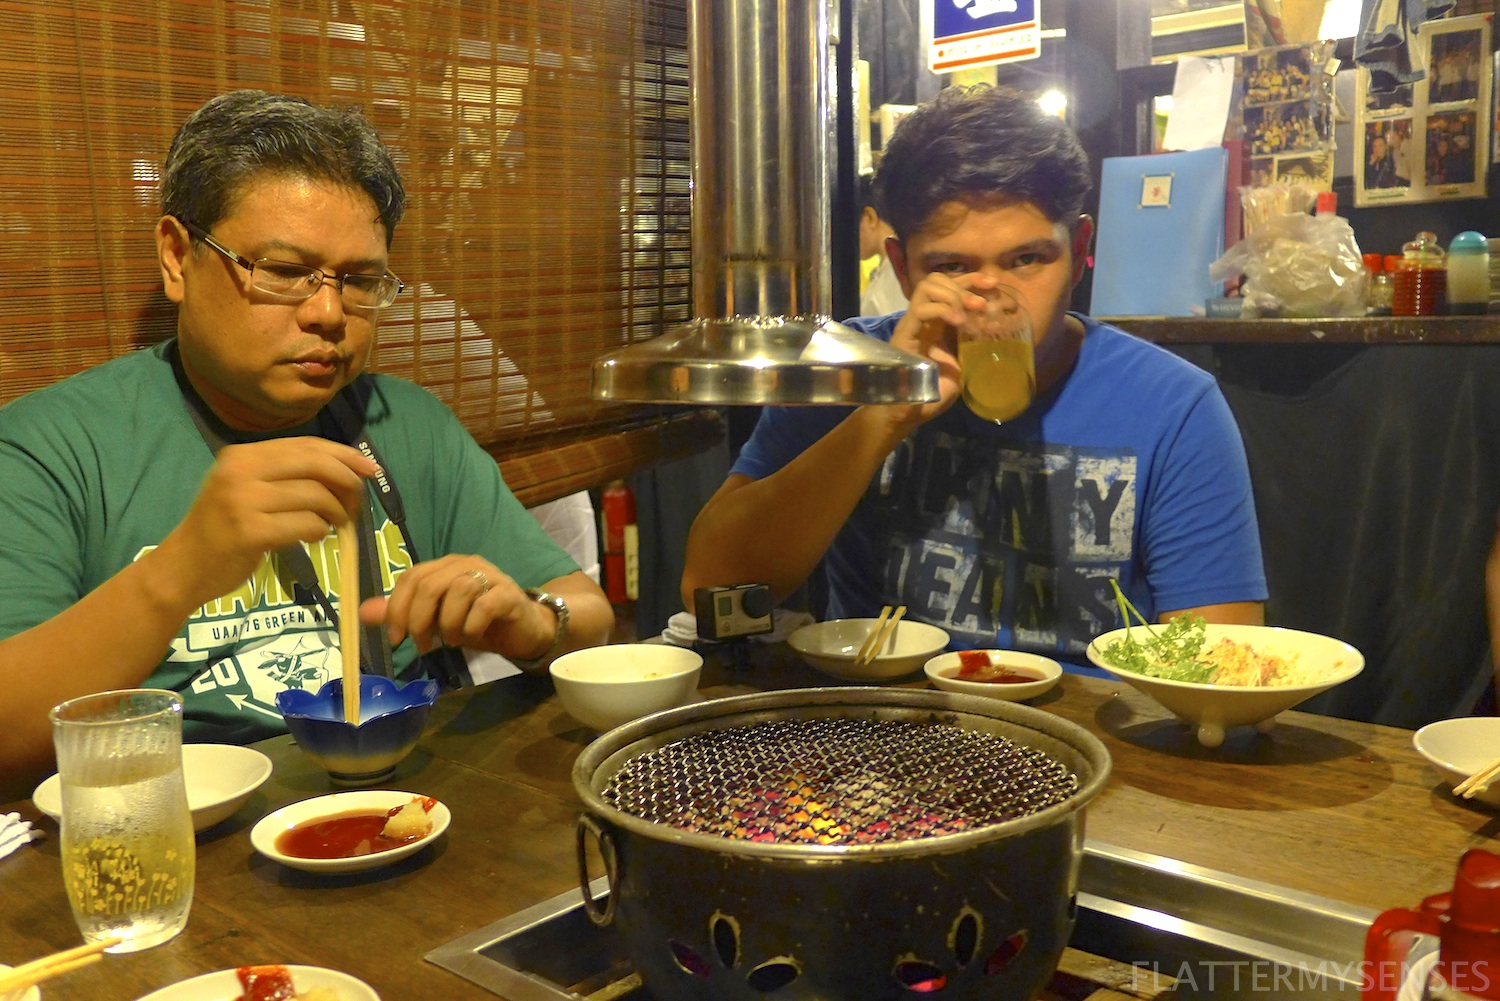 Prepping up our grill for some Yakiniku action!